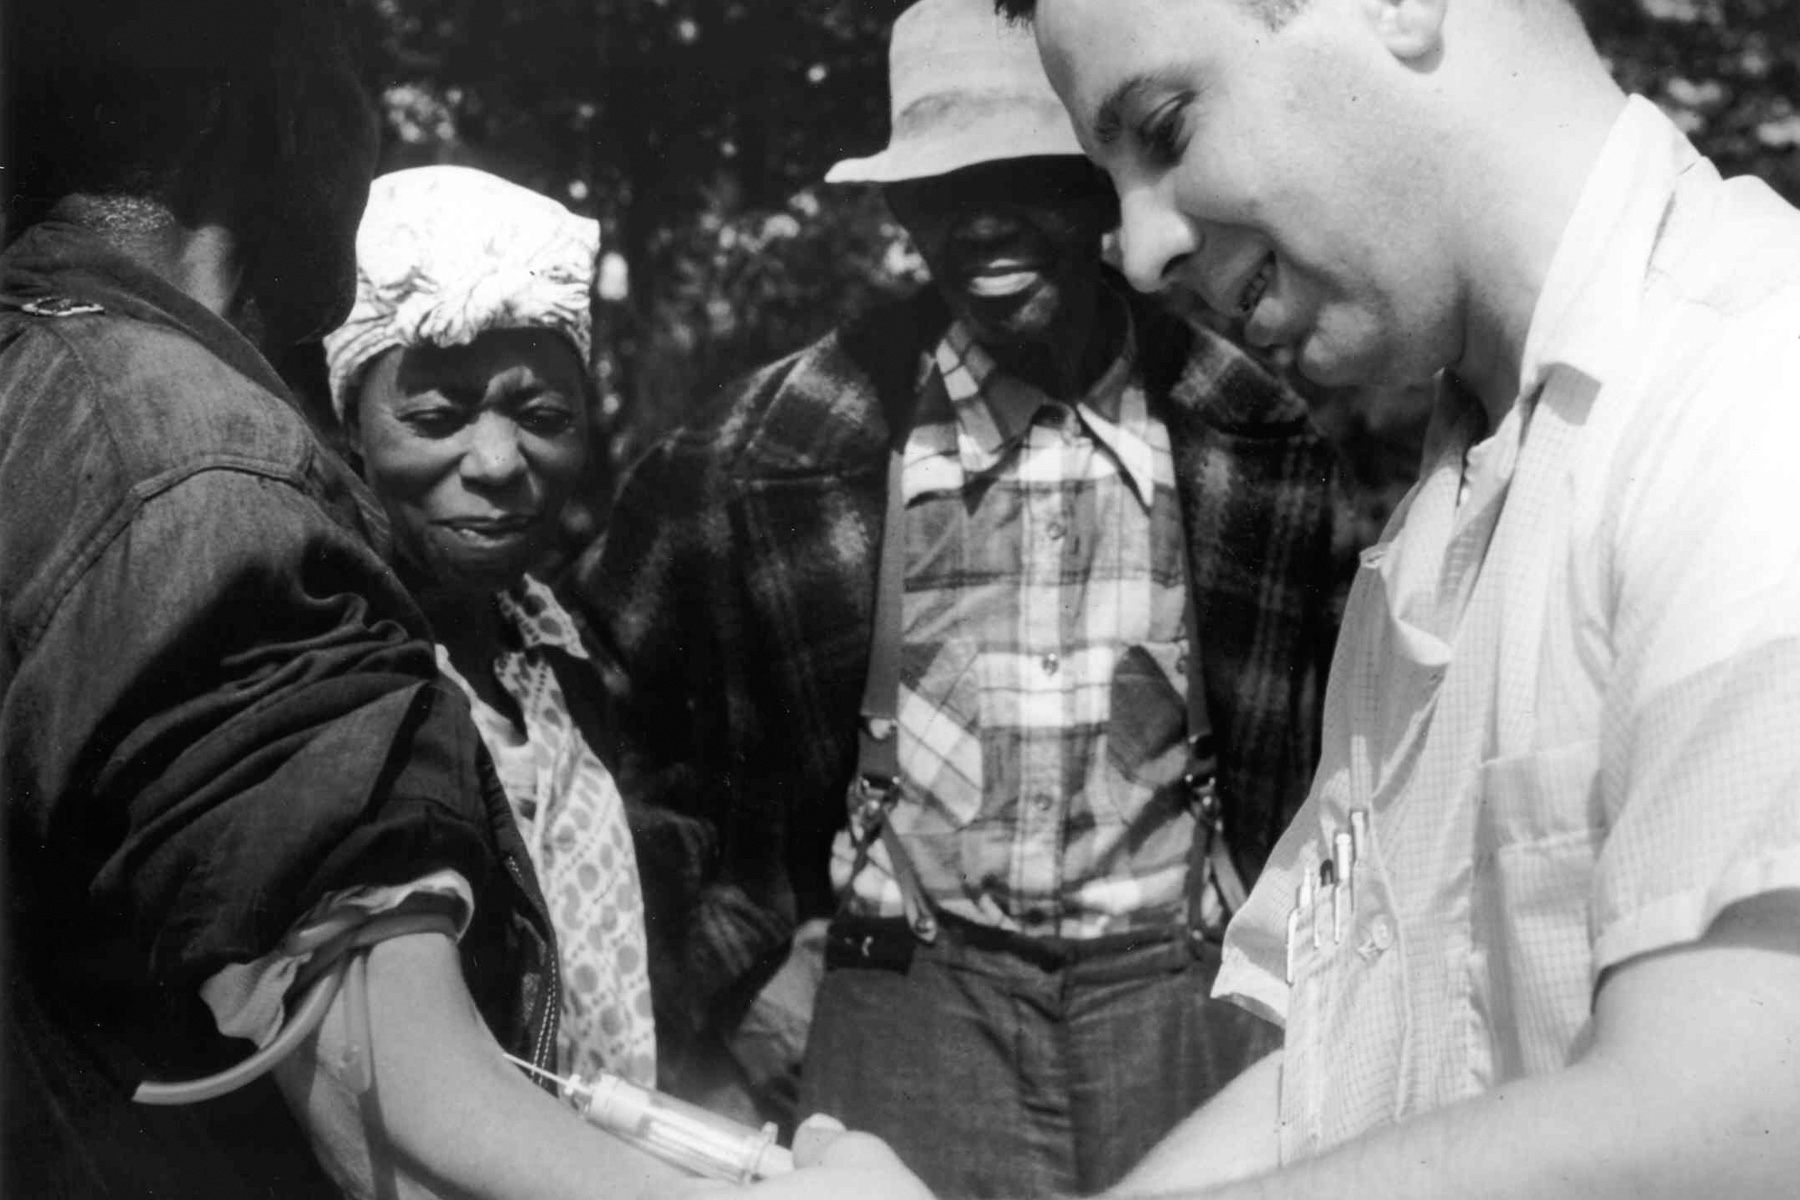 1932: A doctor draws blood from a patient as part of the Tuskegee Syphilis Study. (Photography by Wikimedia Commons/ US National Archive)